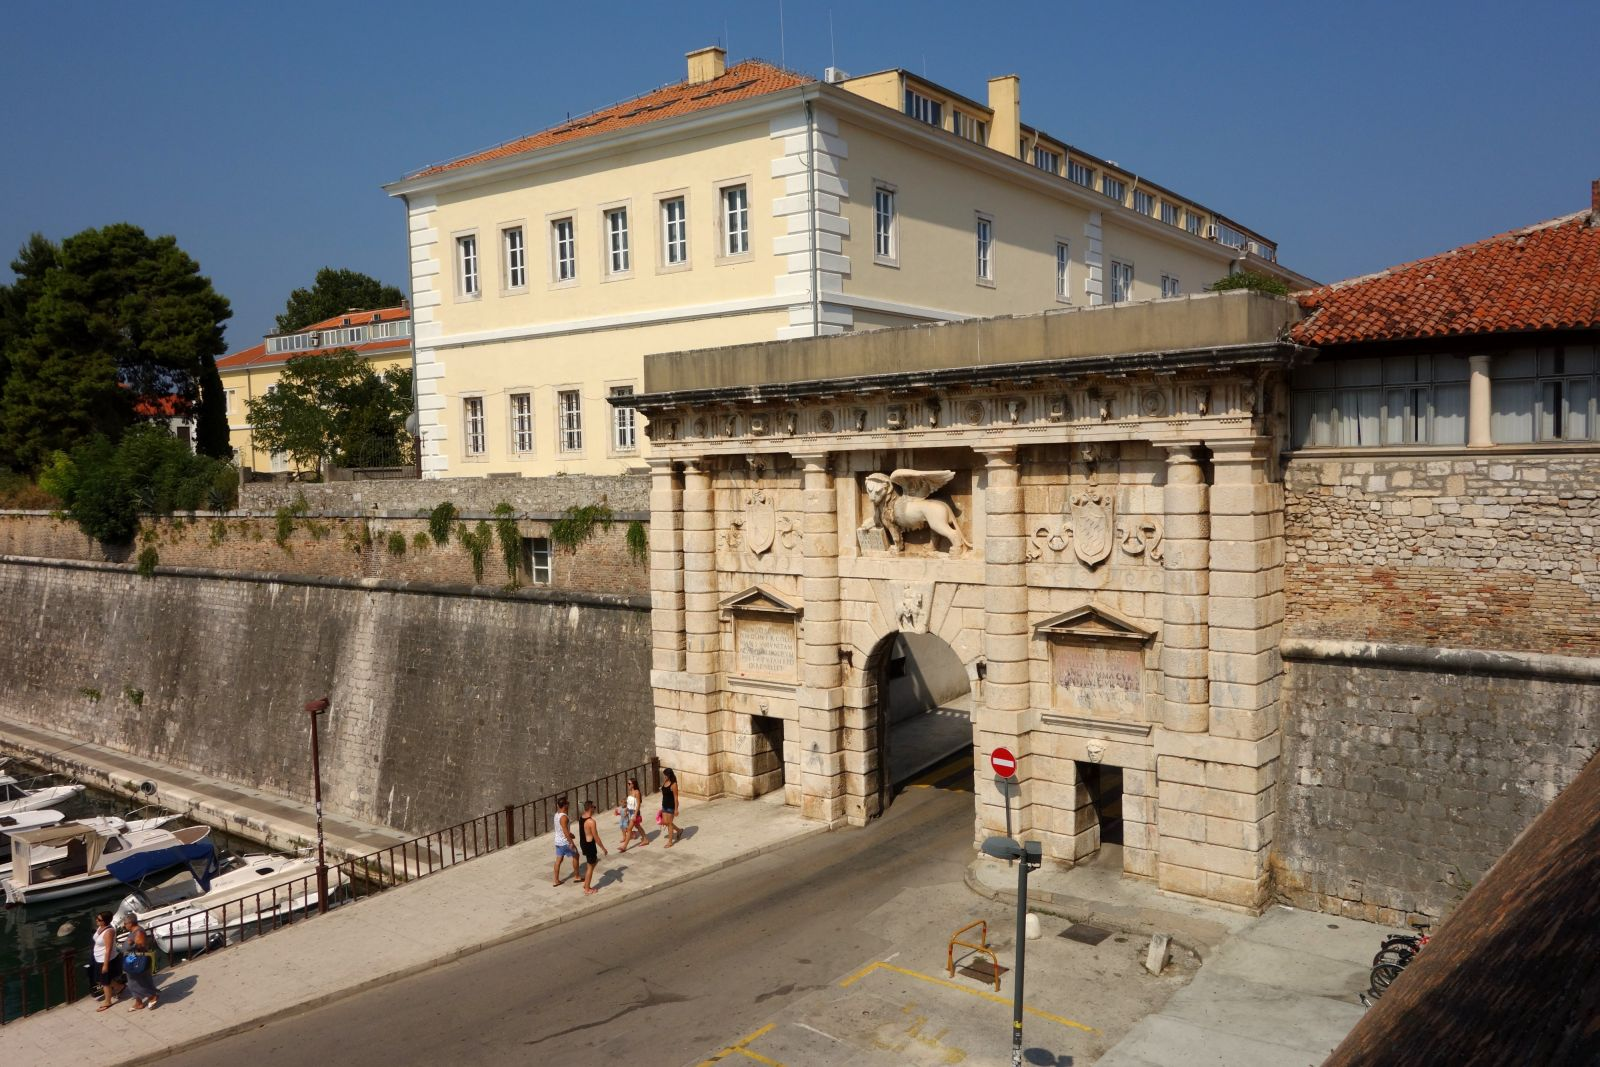 The land gate built by the Venetians